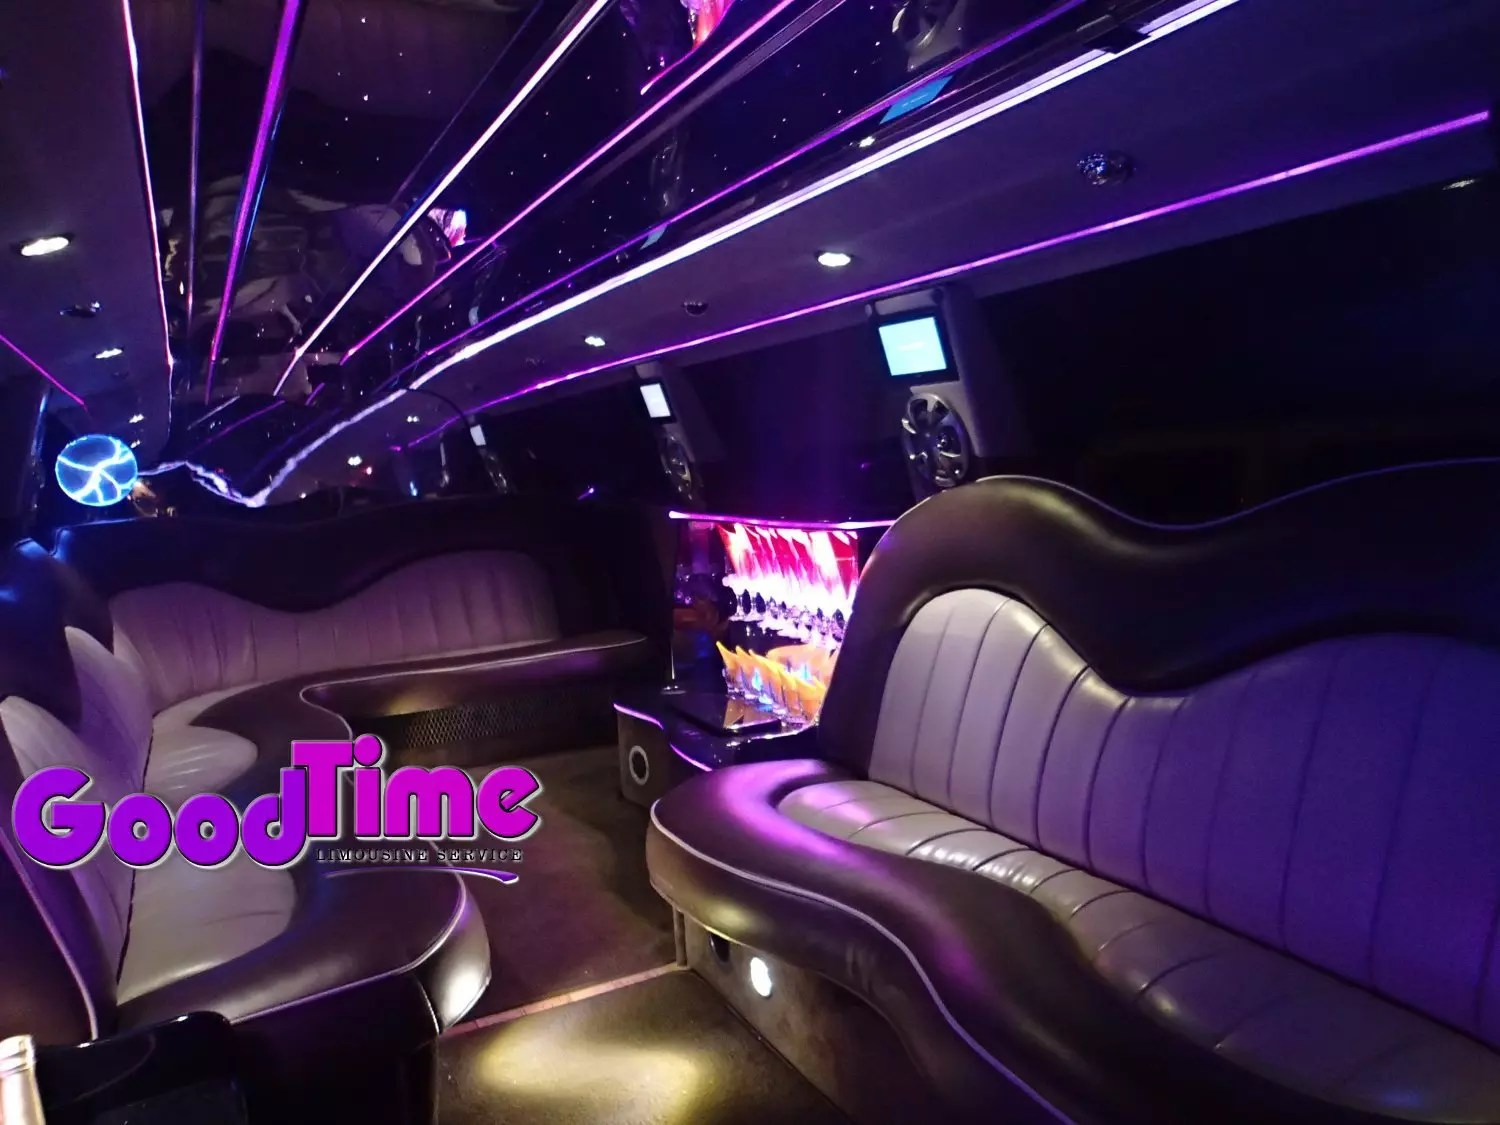 Ford F650 SUV Stretch Limo Hummer Killer 30 passengers int 2 1 LIMO RENTAL FLEET